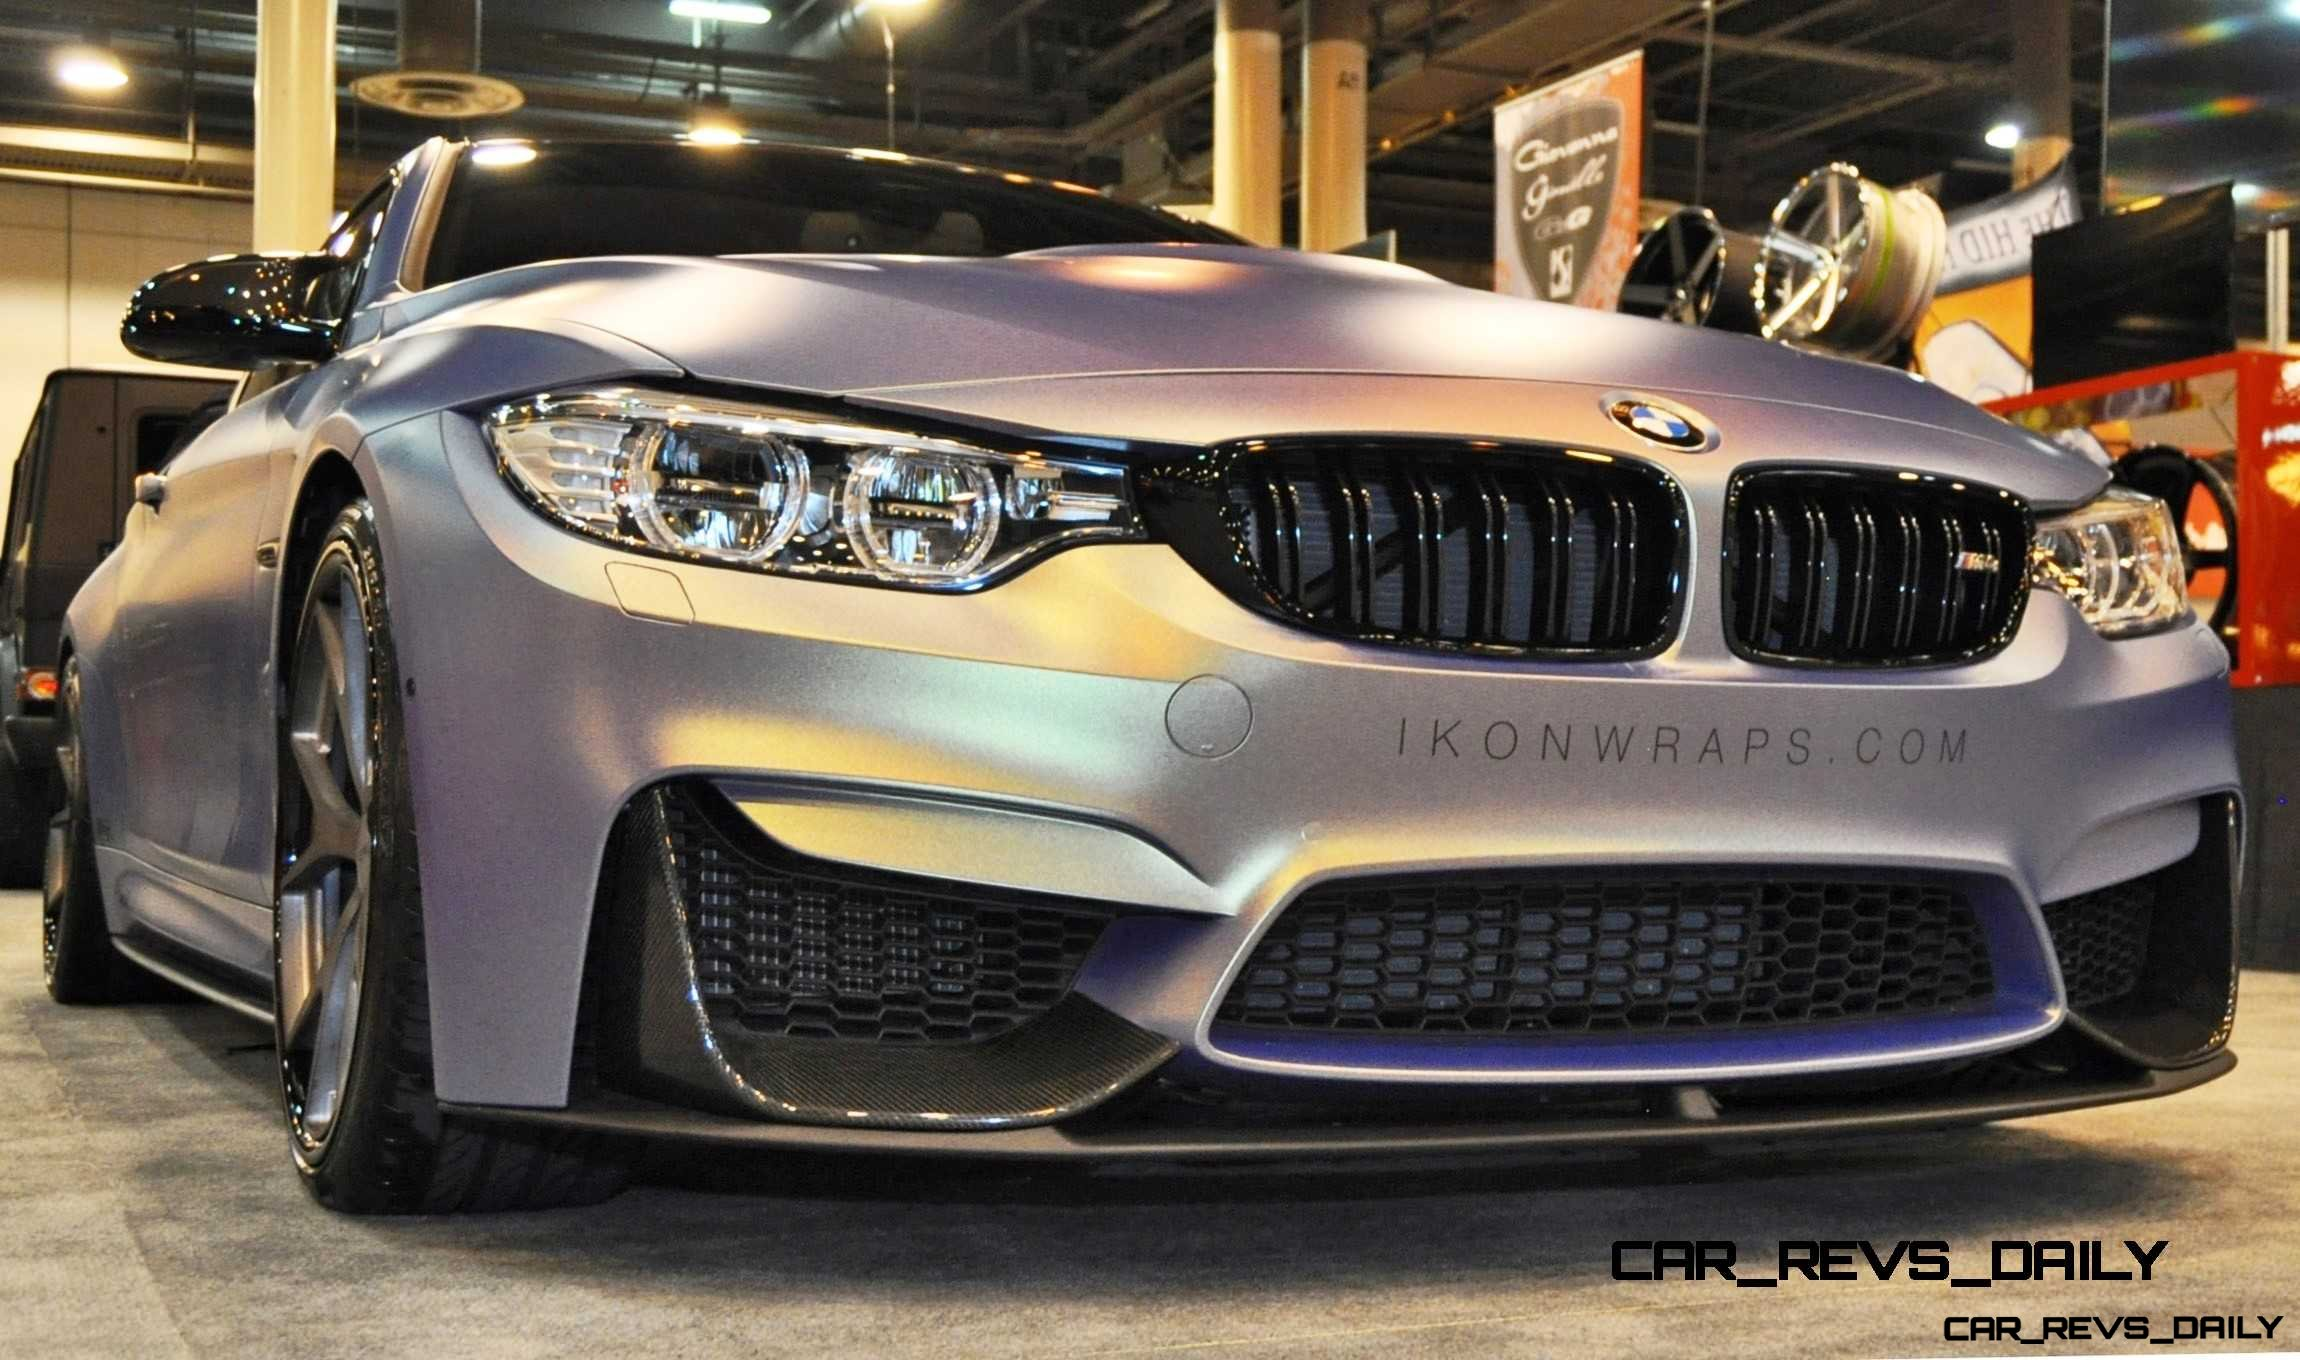 2015 BMW M4 by IKON Wraps 16